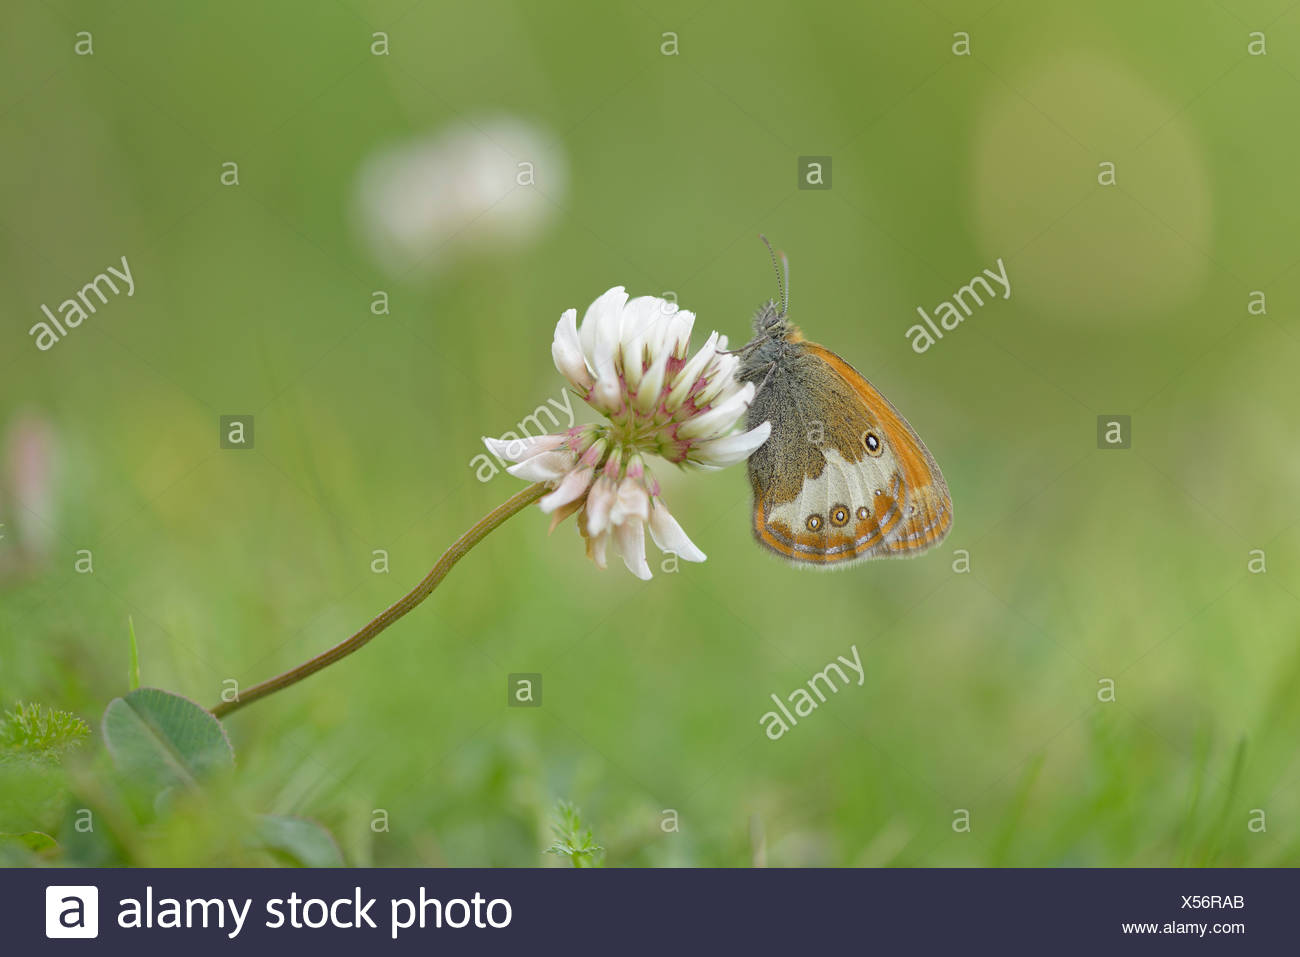 Pearly Heath (Coenonympha arcania), Ústí nad Labem Region, Czech Republic - Stock Image